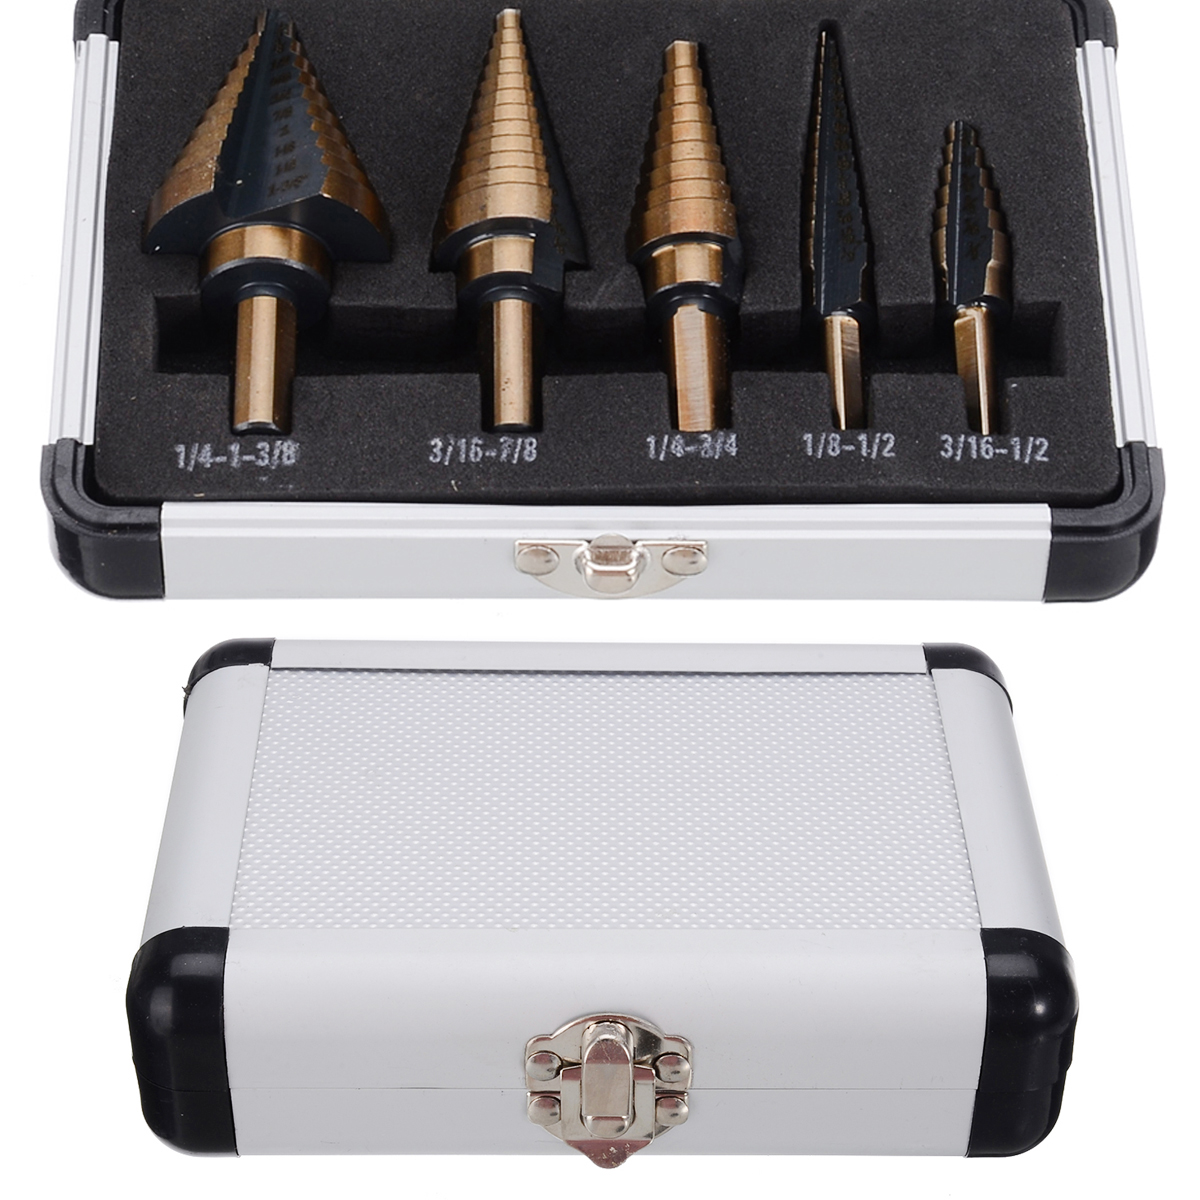 5pcs kit New HSS Step Titanium Cone Drill Hole Cutter Bit Multiple Hole 50 Sizes Step Drill Bit with Aluminum Case High Quality in Drill Bits from Tools